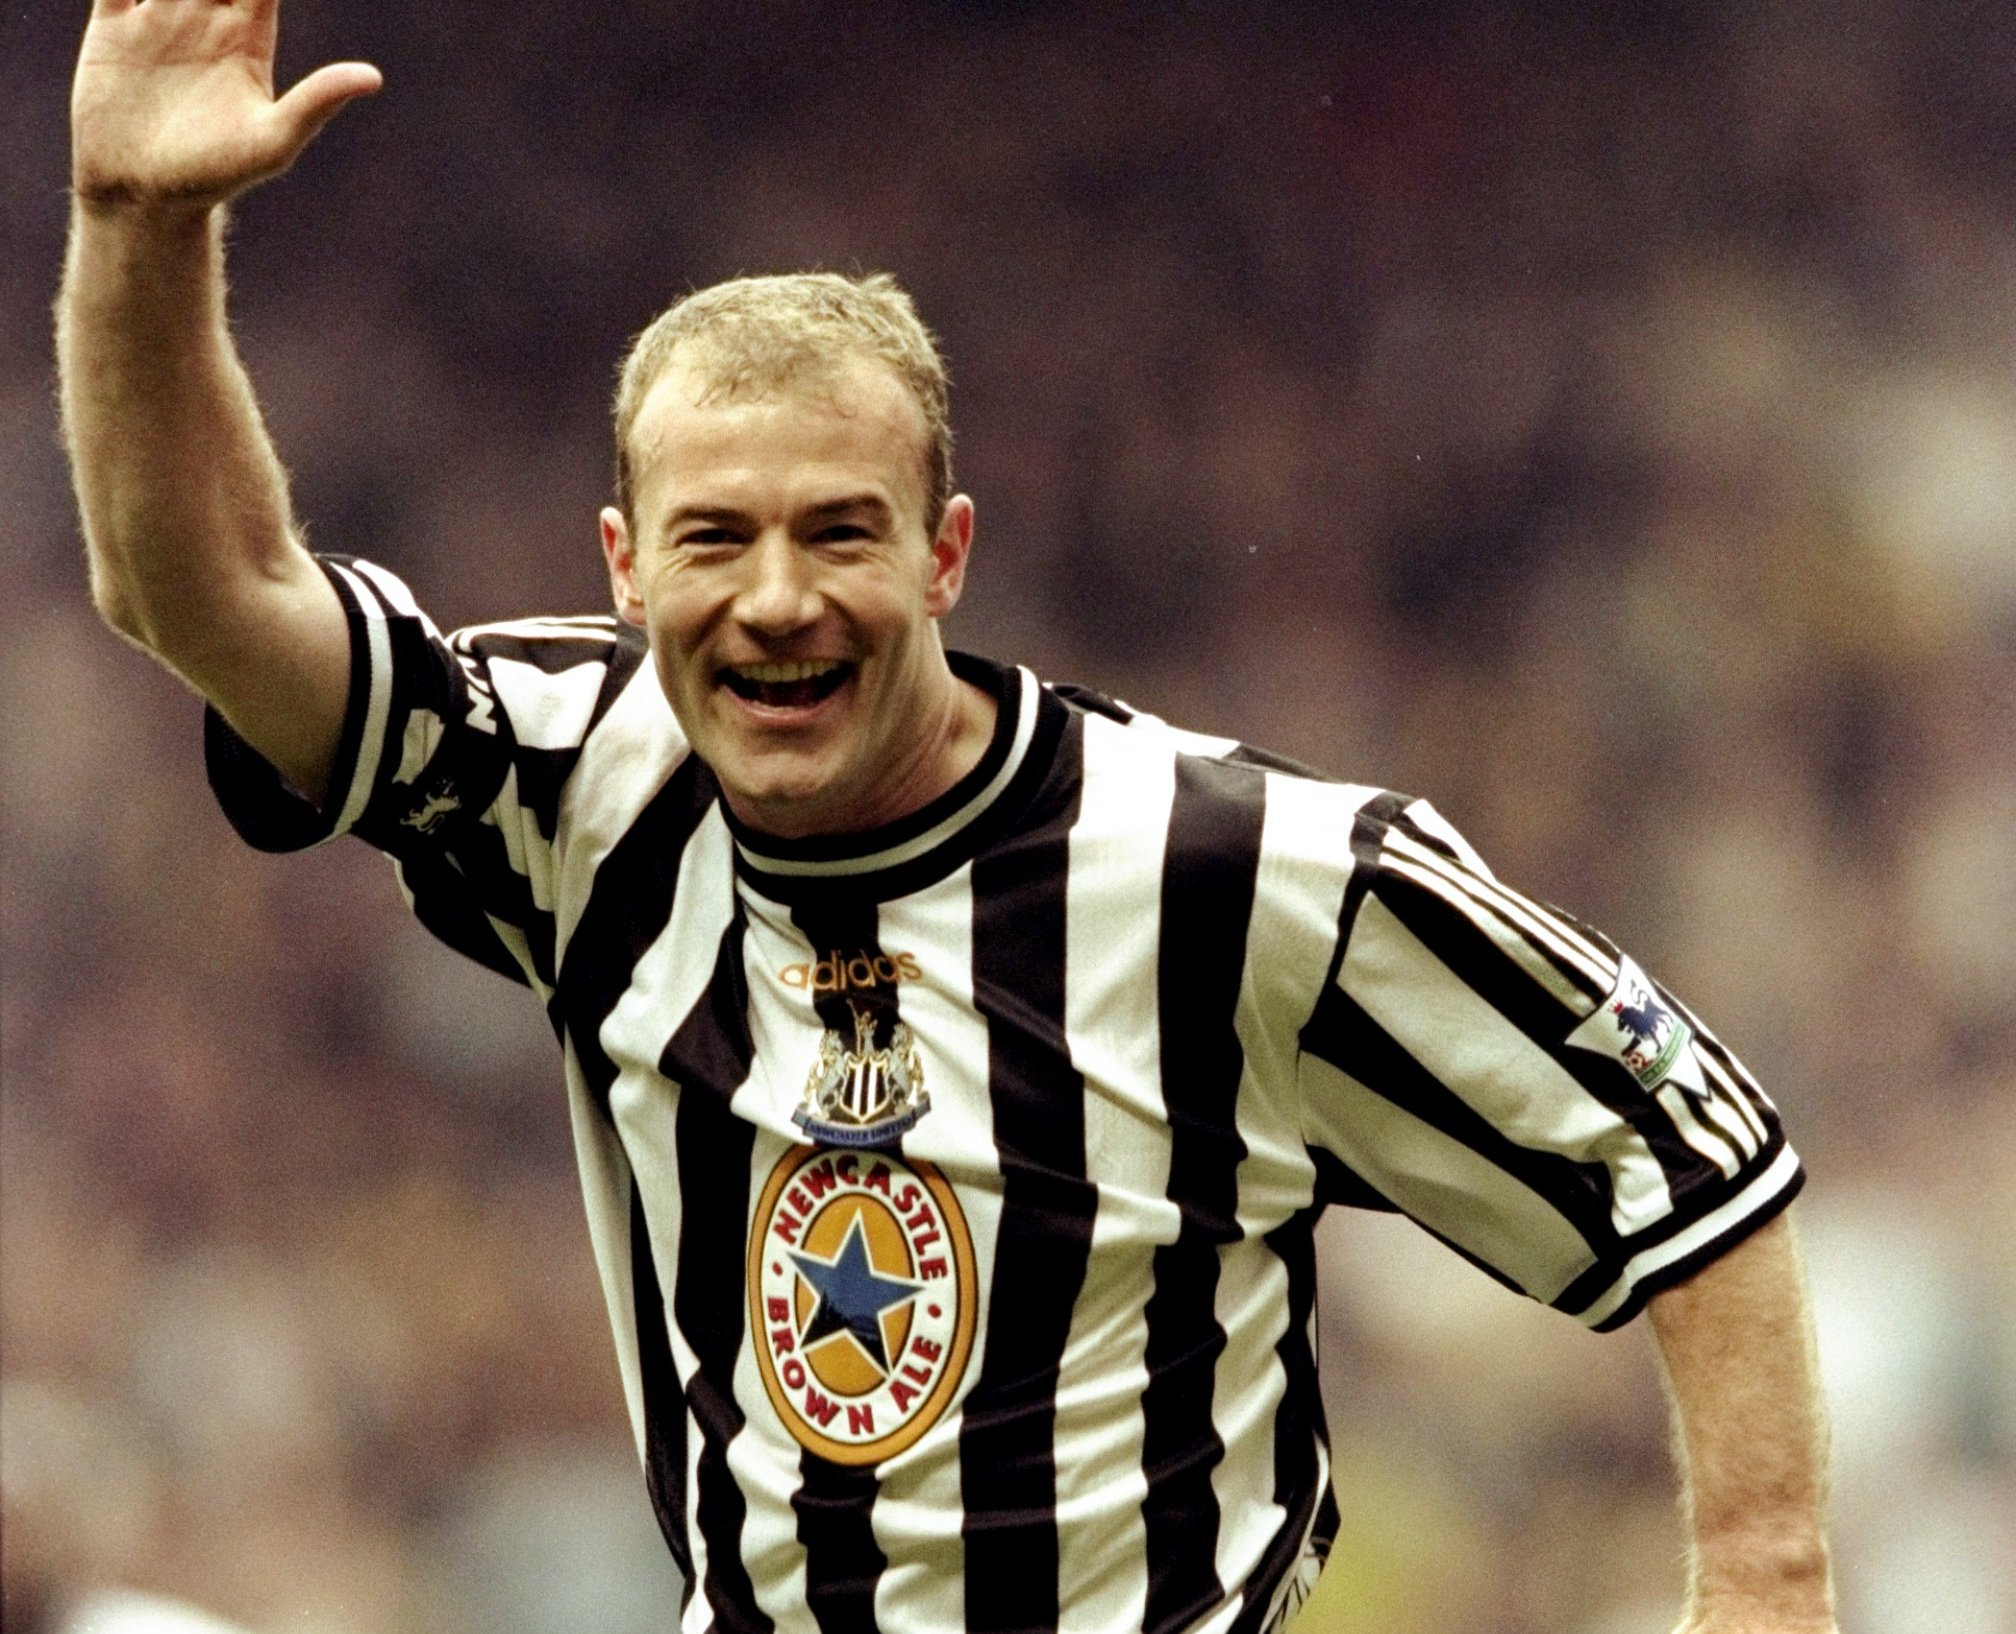 Happy birthday, Alan Shearer! 441 games  260 goals 11 hat-tricks All-time PL leading goalscorer  Legend.